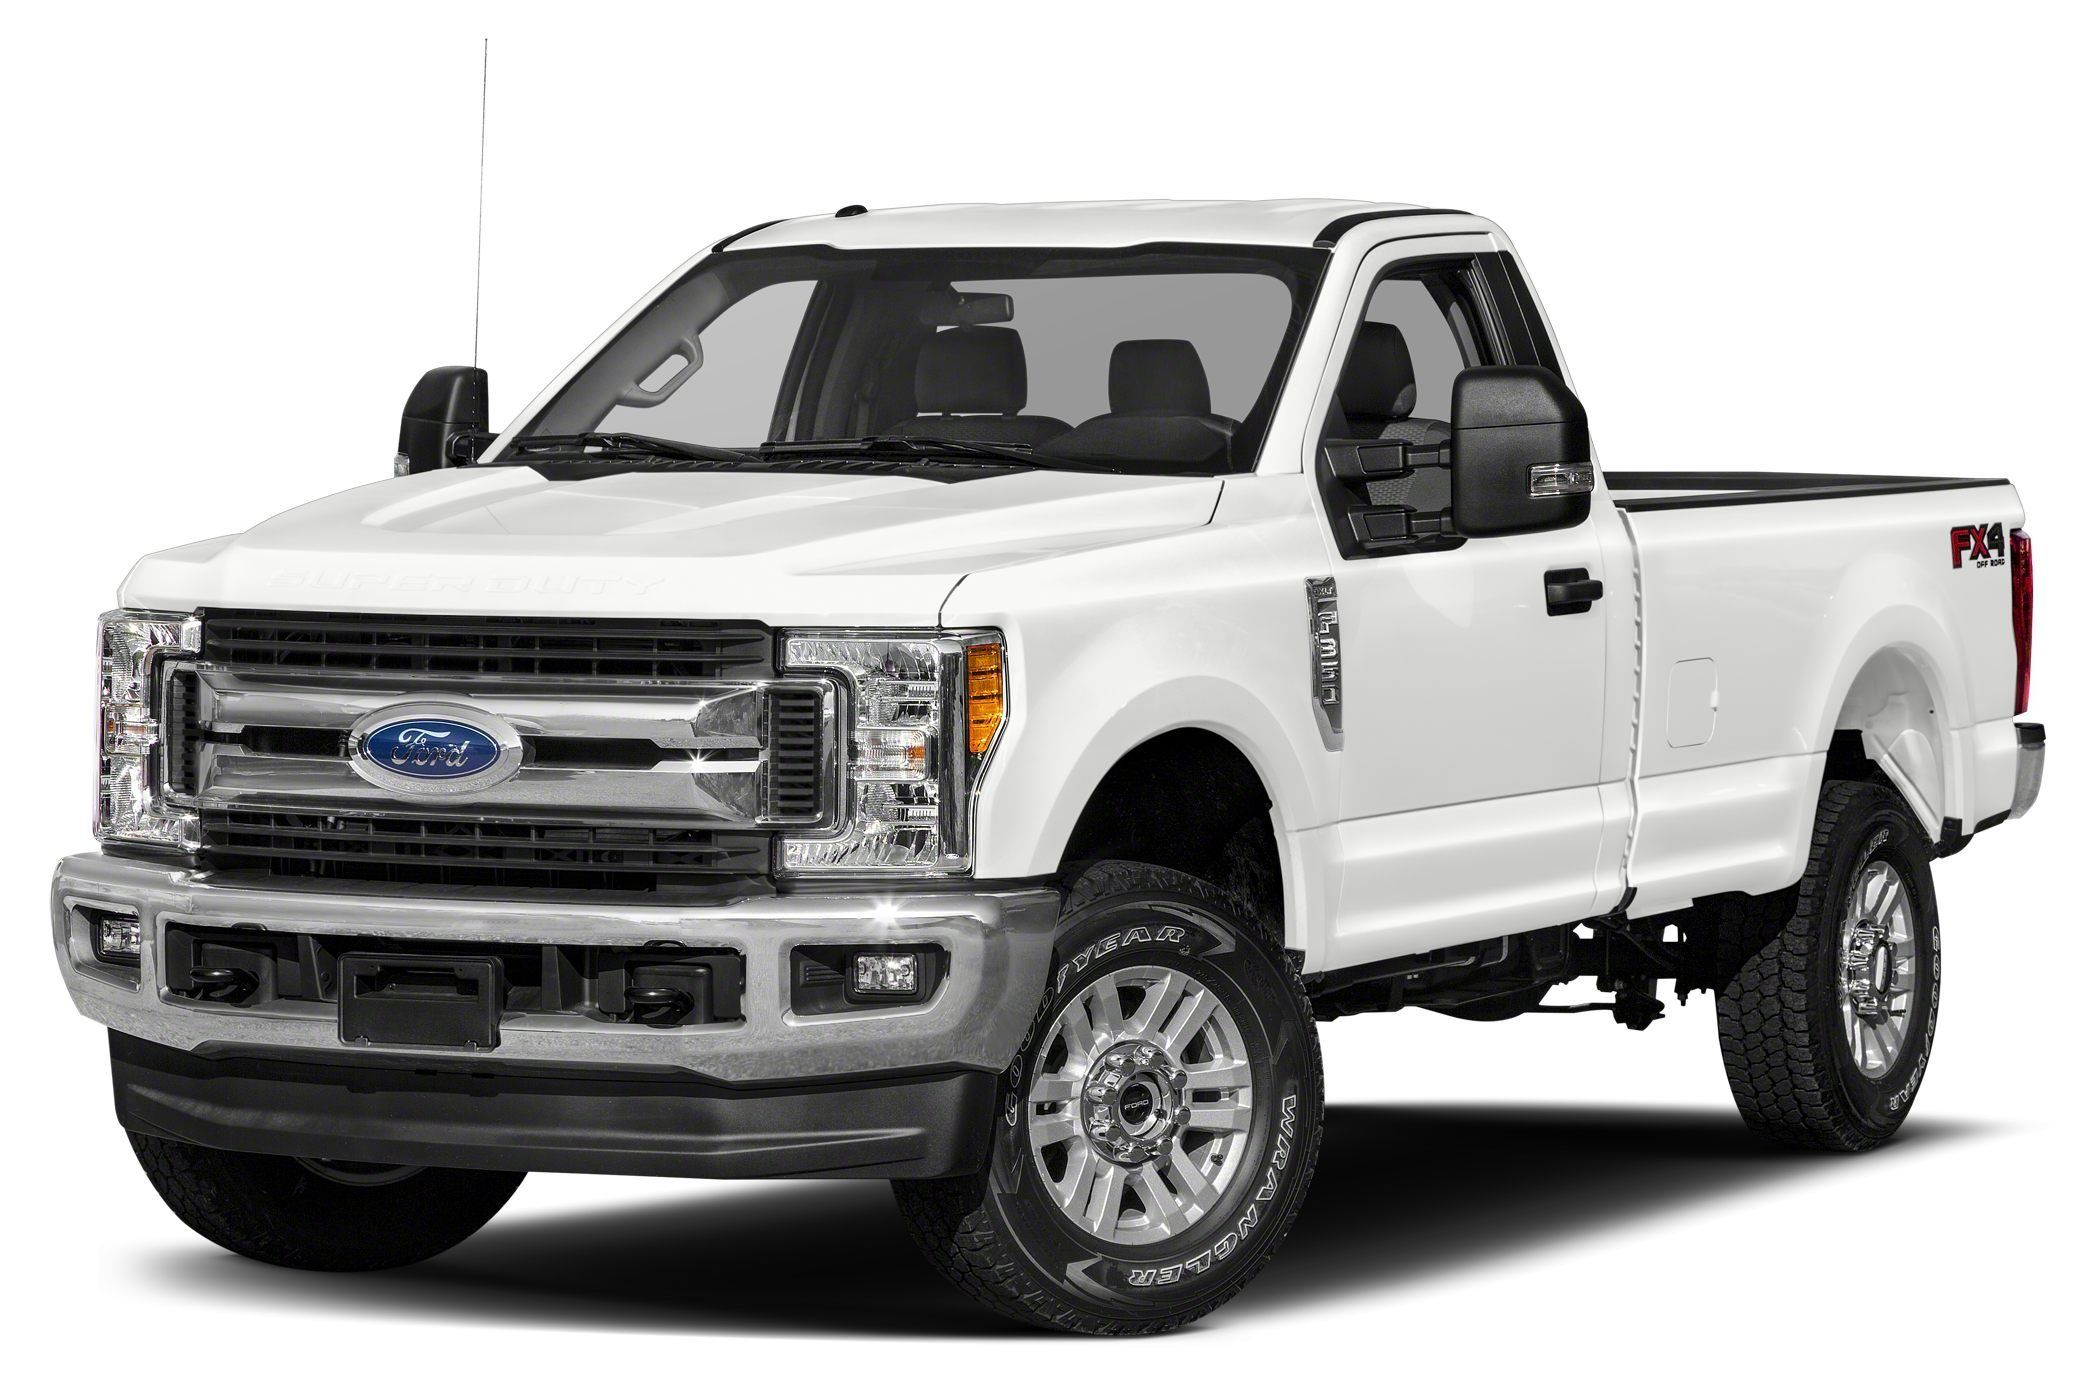 2021 ford F 250 Specs in 2020 Ford f250, Ford trucks